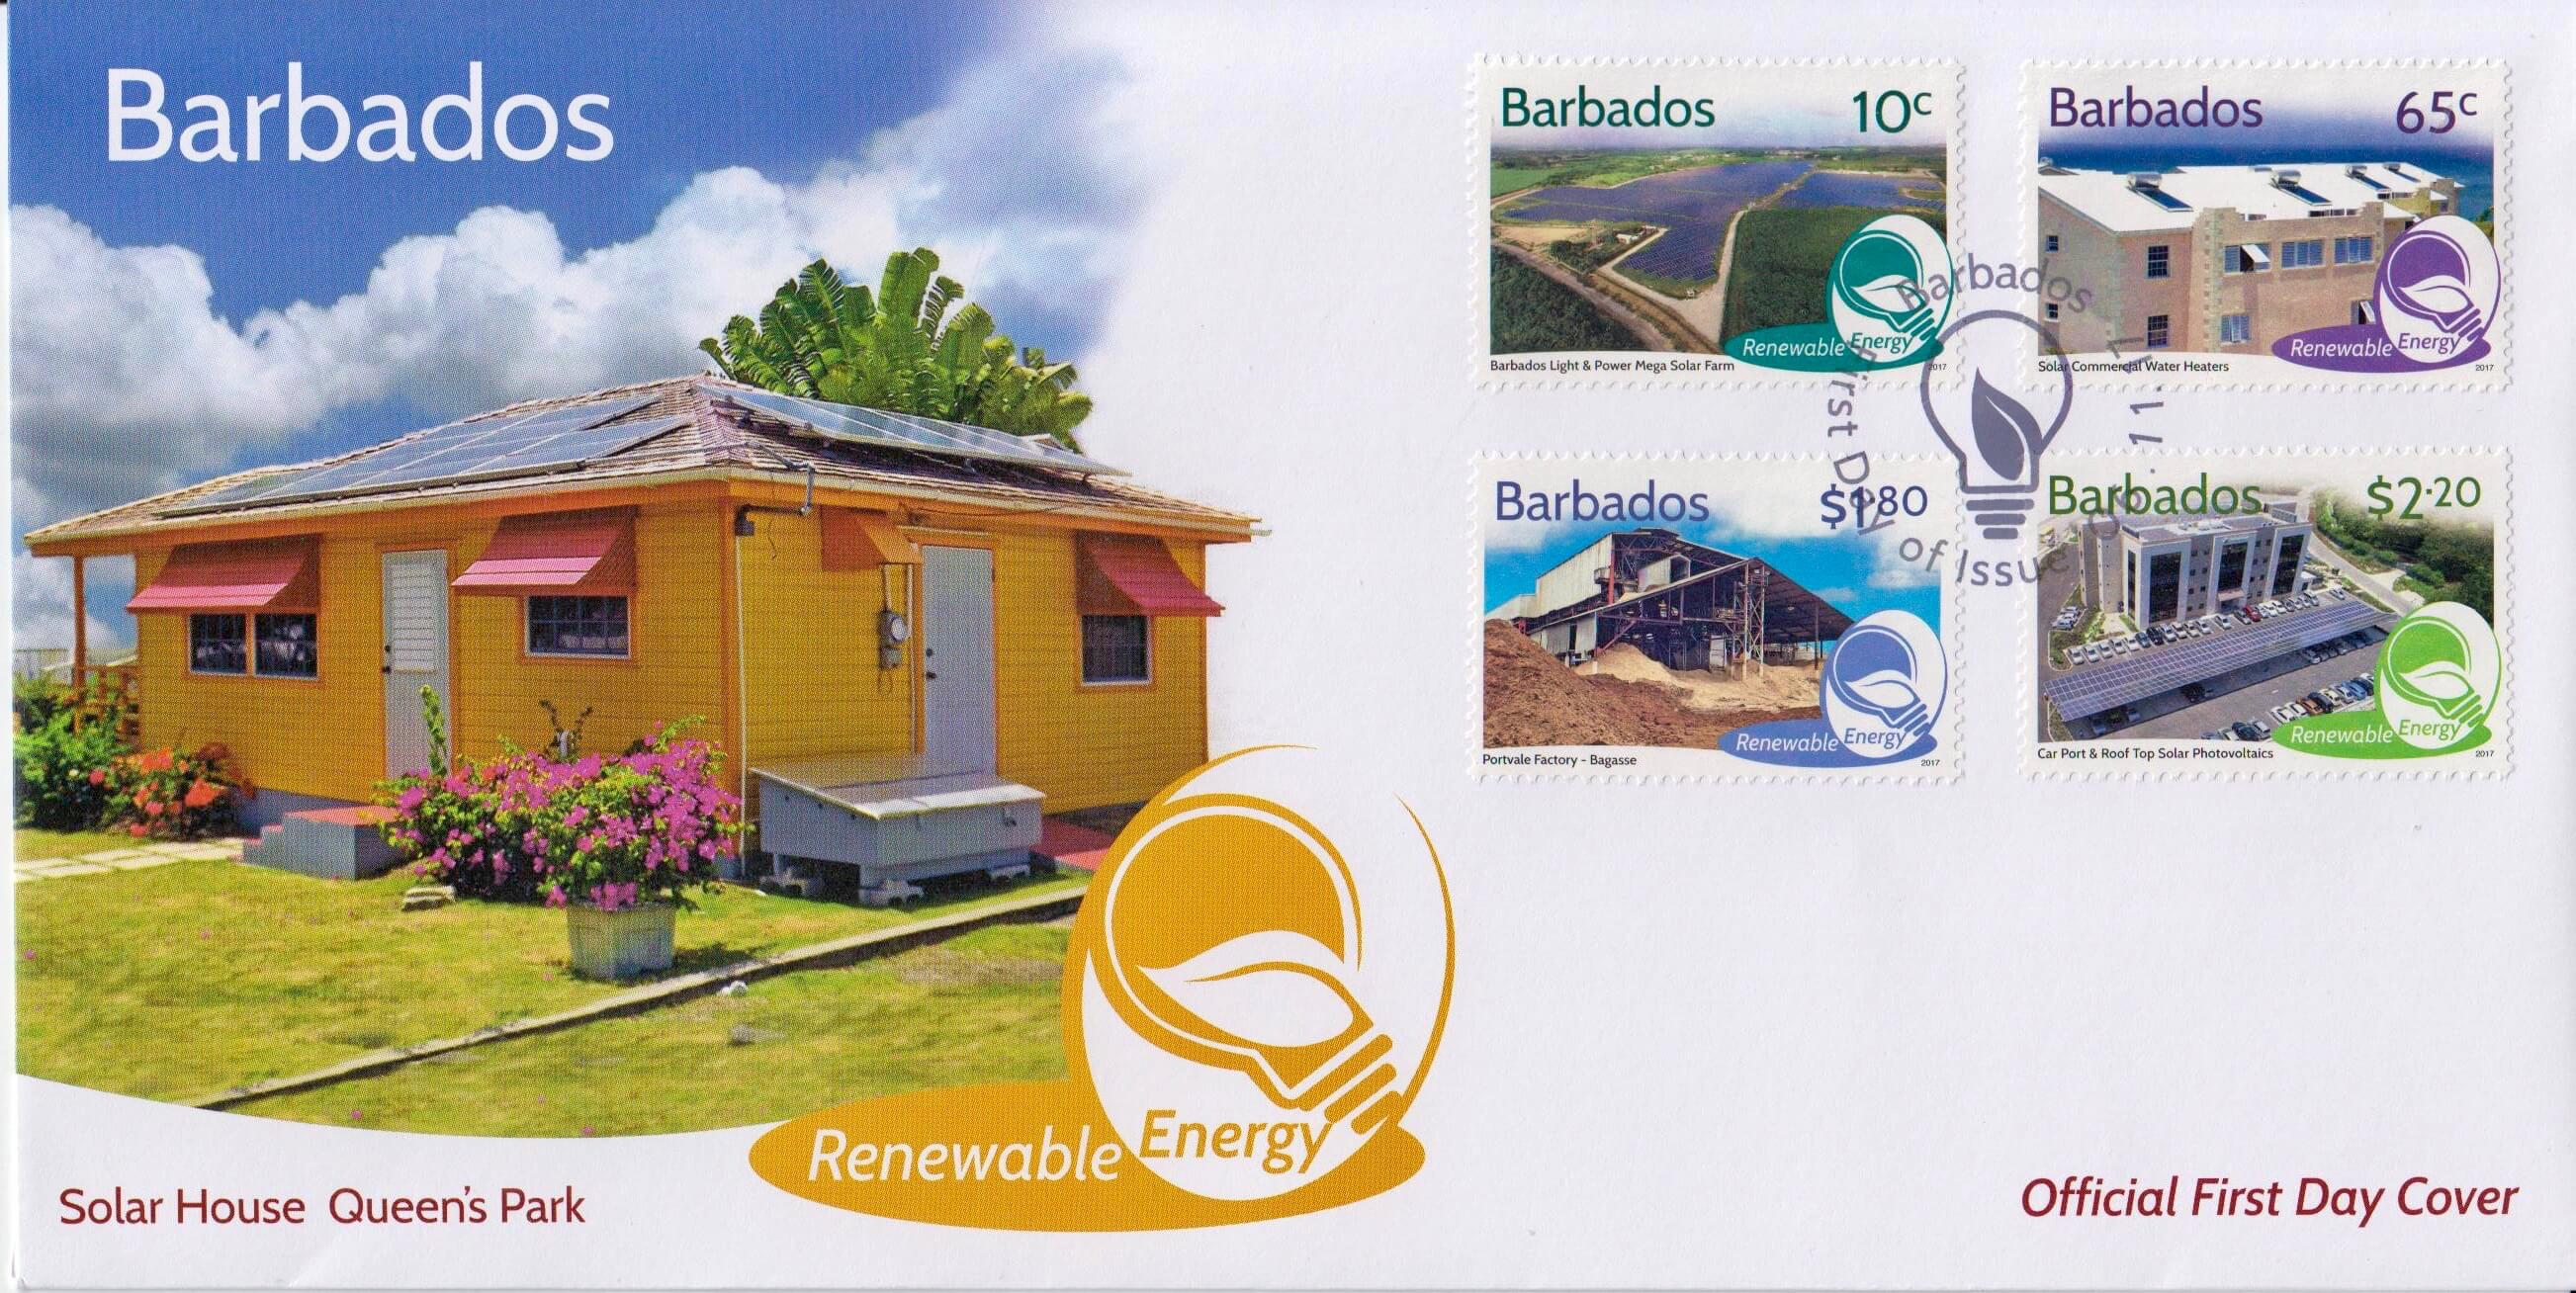 Barbados Renewable Energy - First Day Cover - Queens Park Solar House